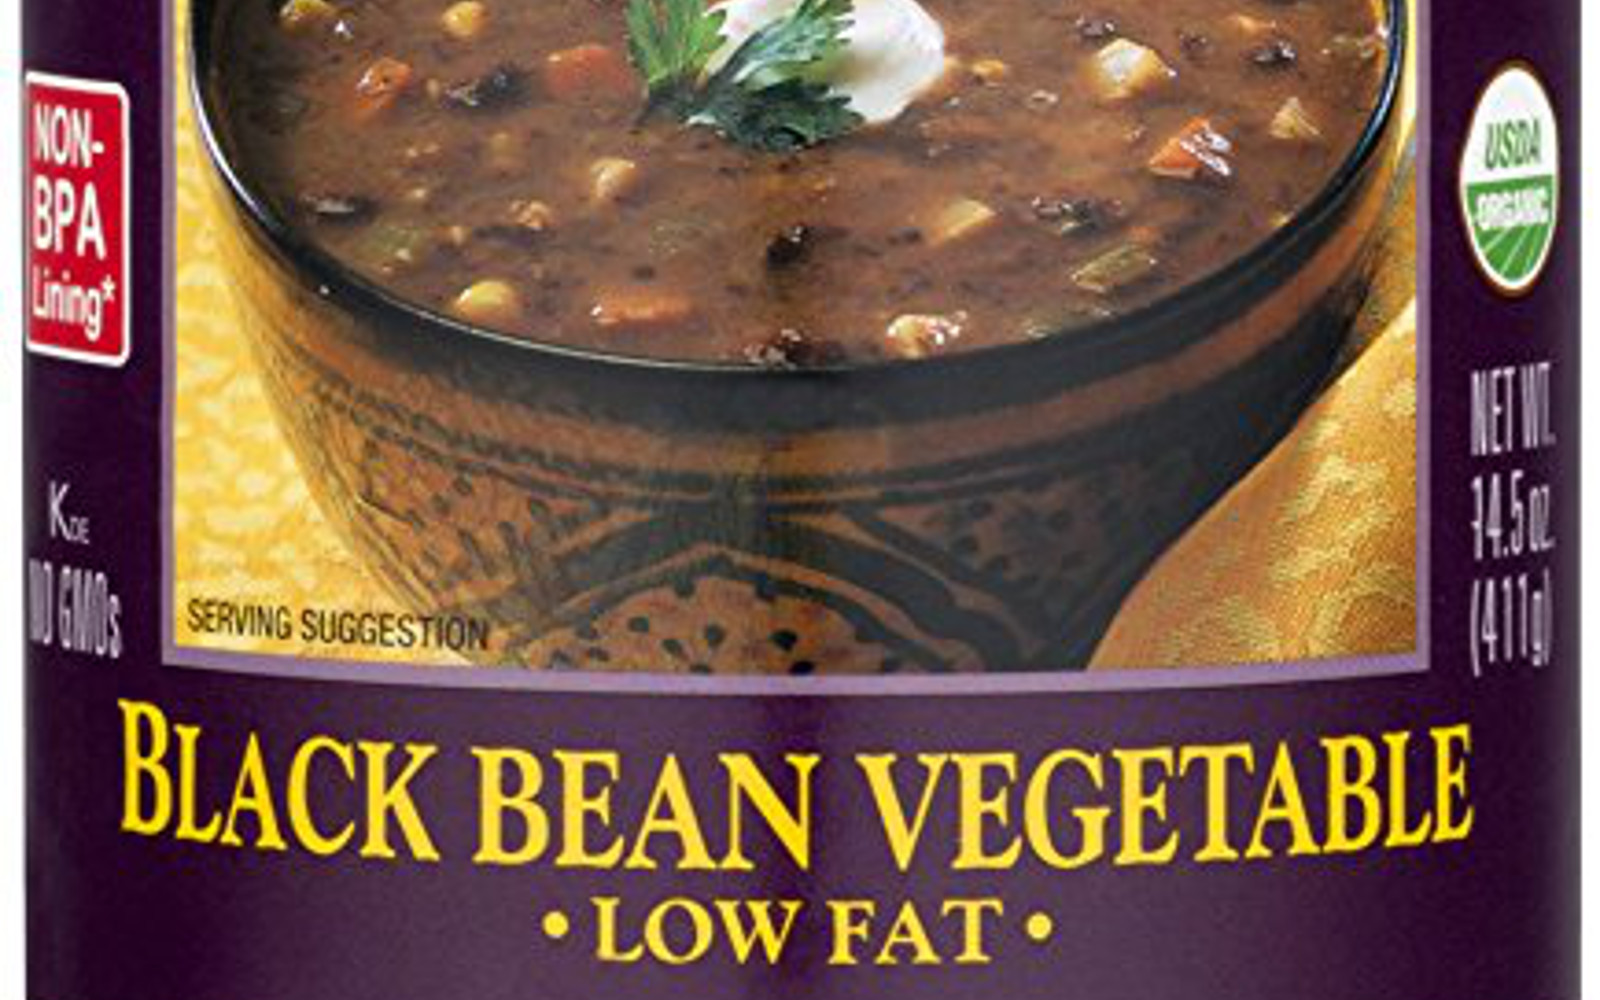 Healthy Amazon Soup Finds for the Vegan College Student | Vegan Amy's Organic Soups, Black Bean Vegetable, 14.5 Ounce